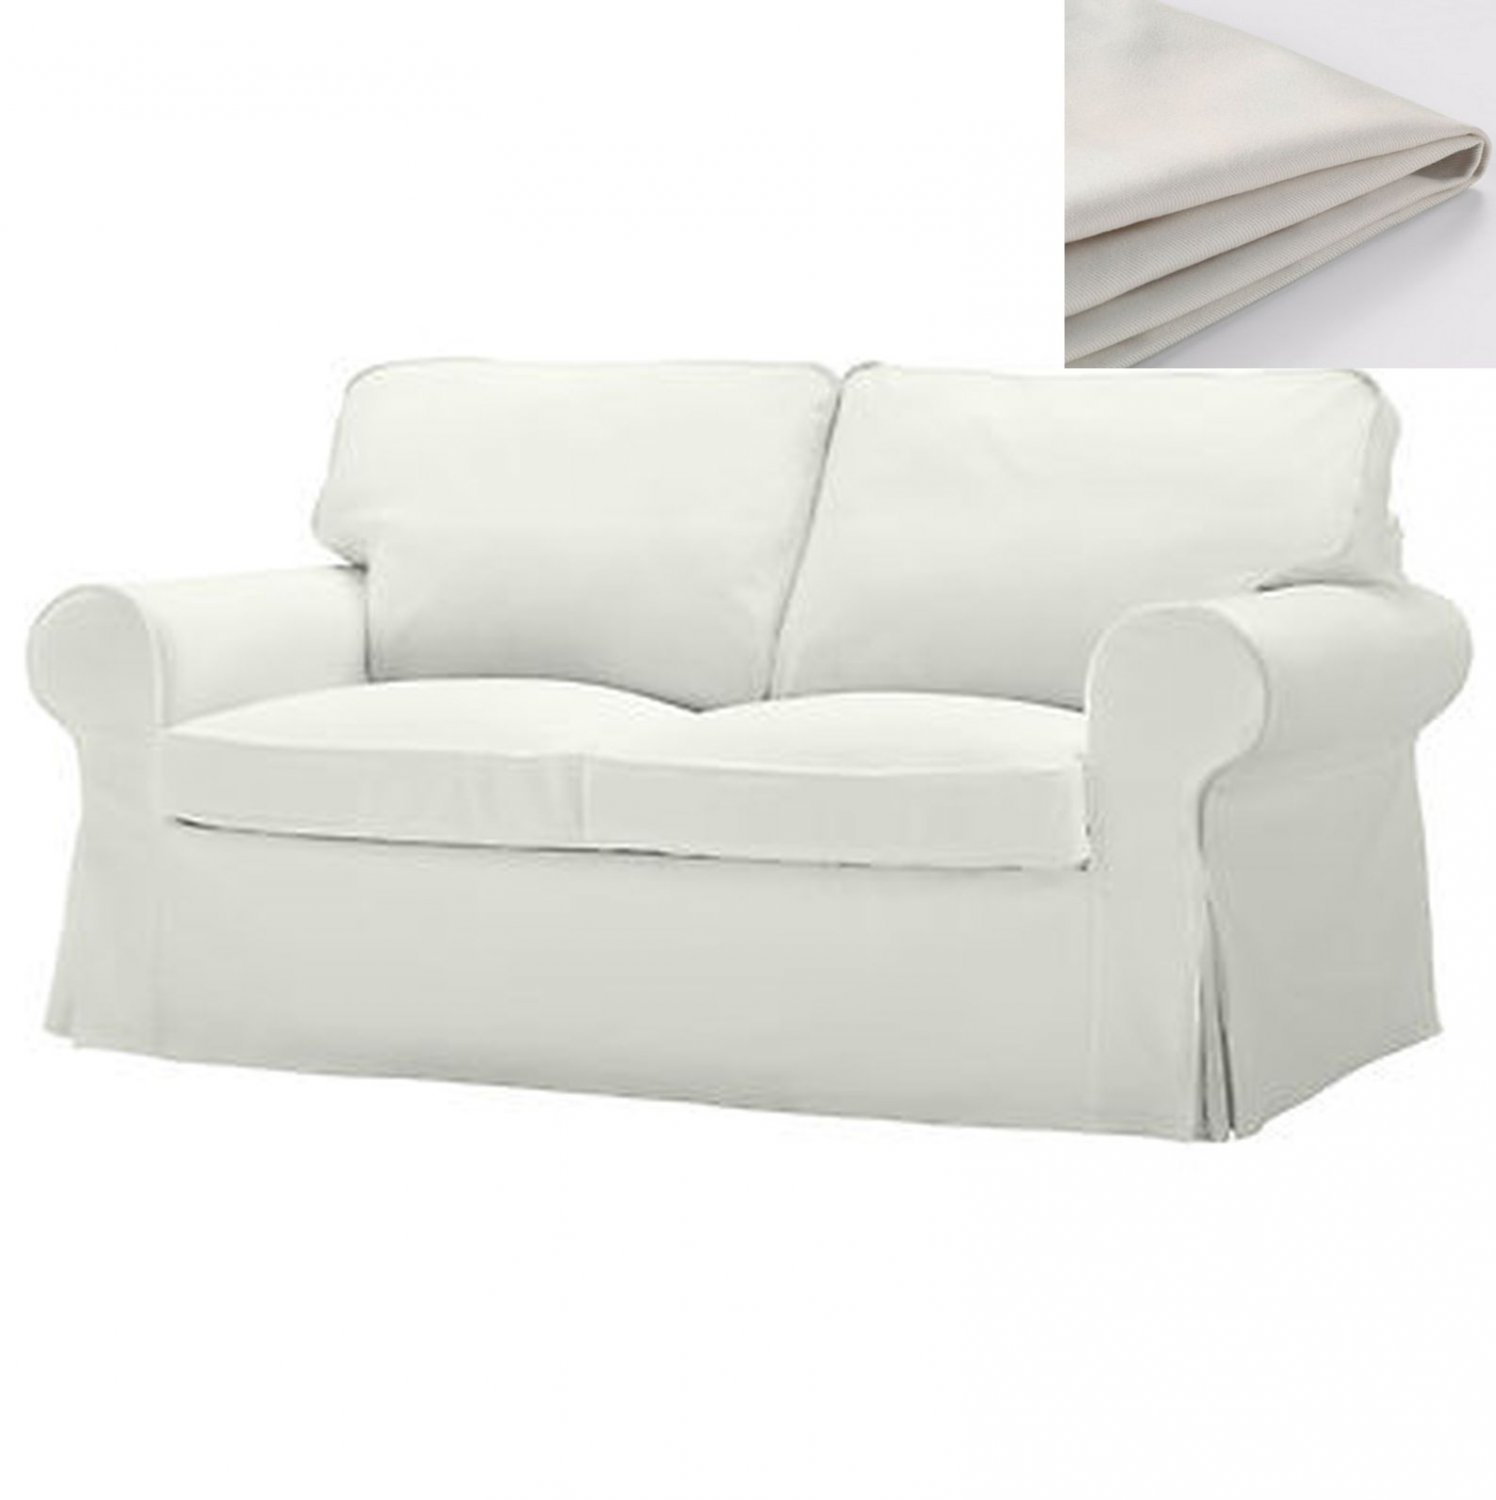 Loveseat Ikea Ikea Ektorp 2 Seat Sofa Slipcover Loveseat Cover Blekinge White Cotton